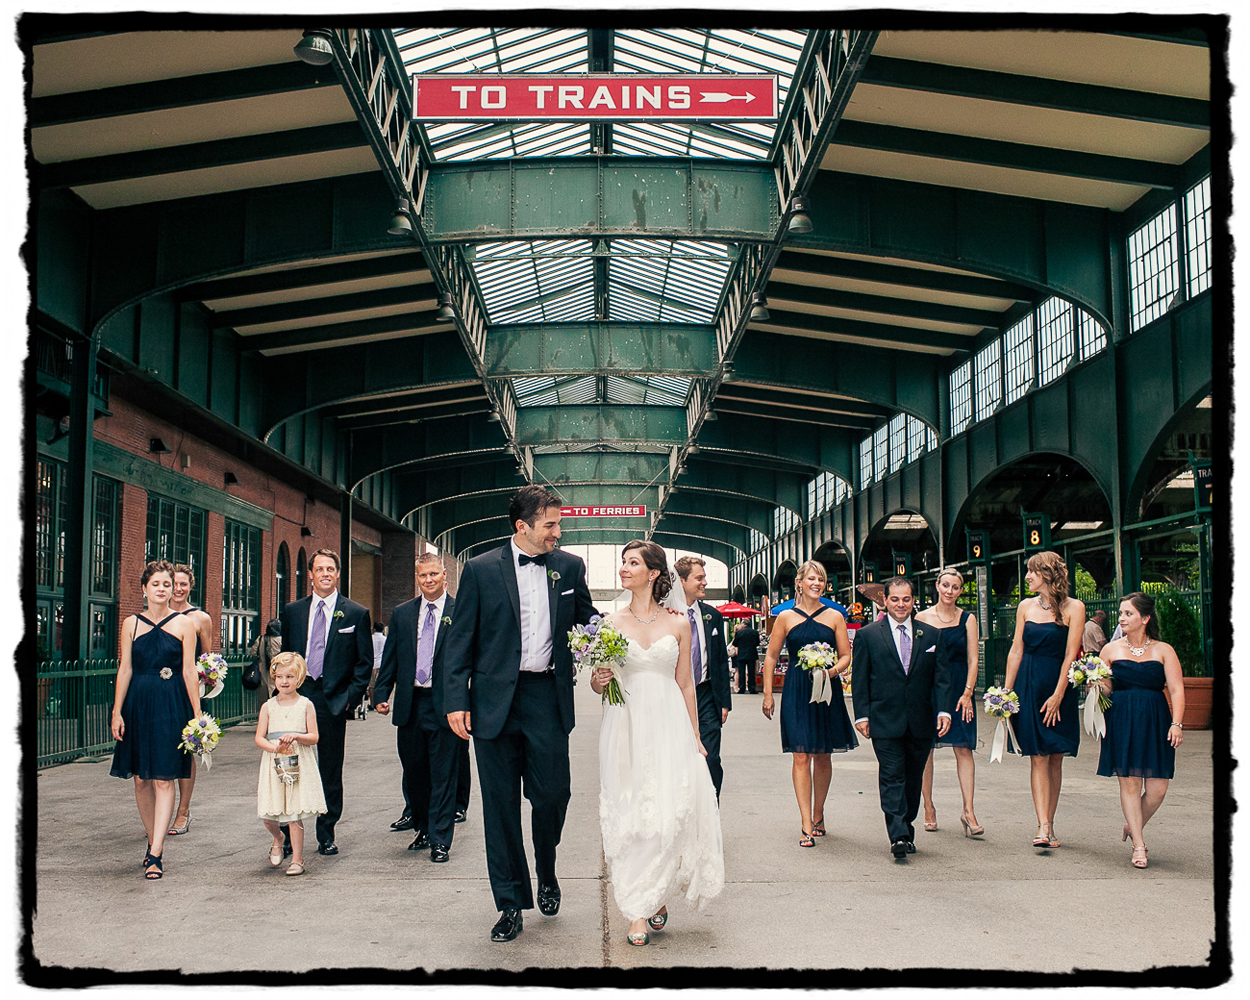 The old train station museum made a wonderful backdrop for a walking shot with this fun bridal party.